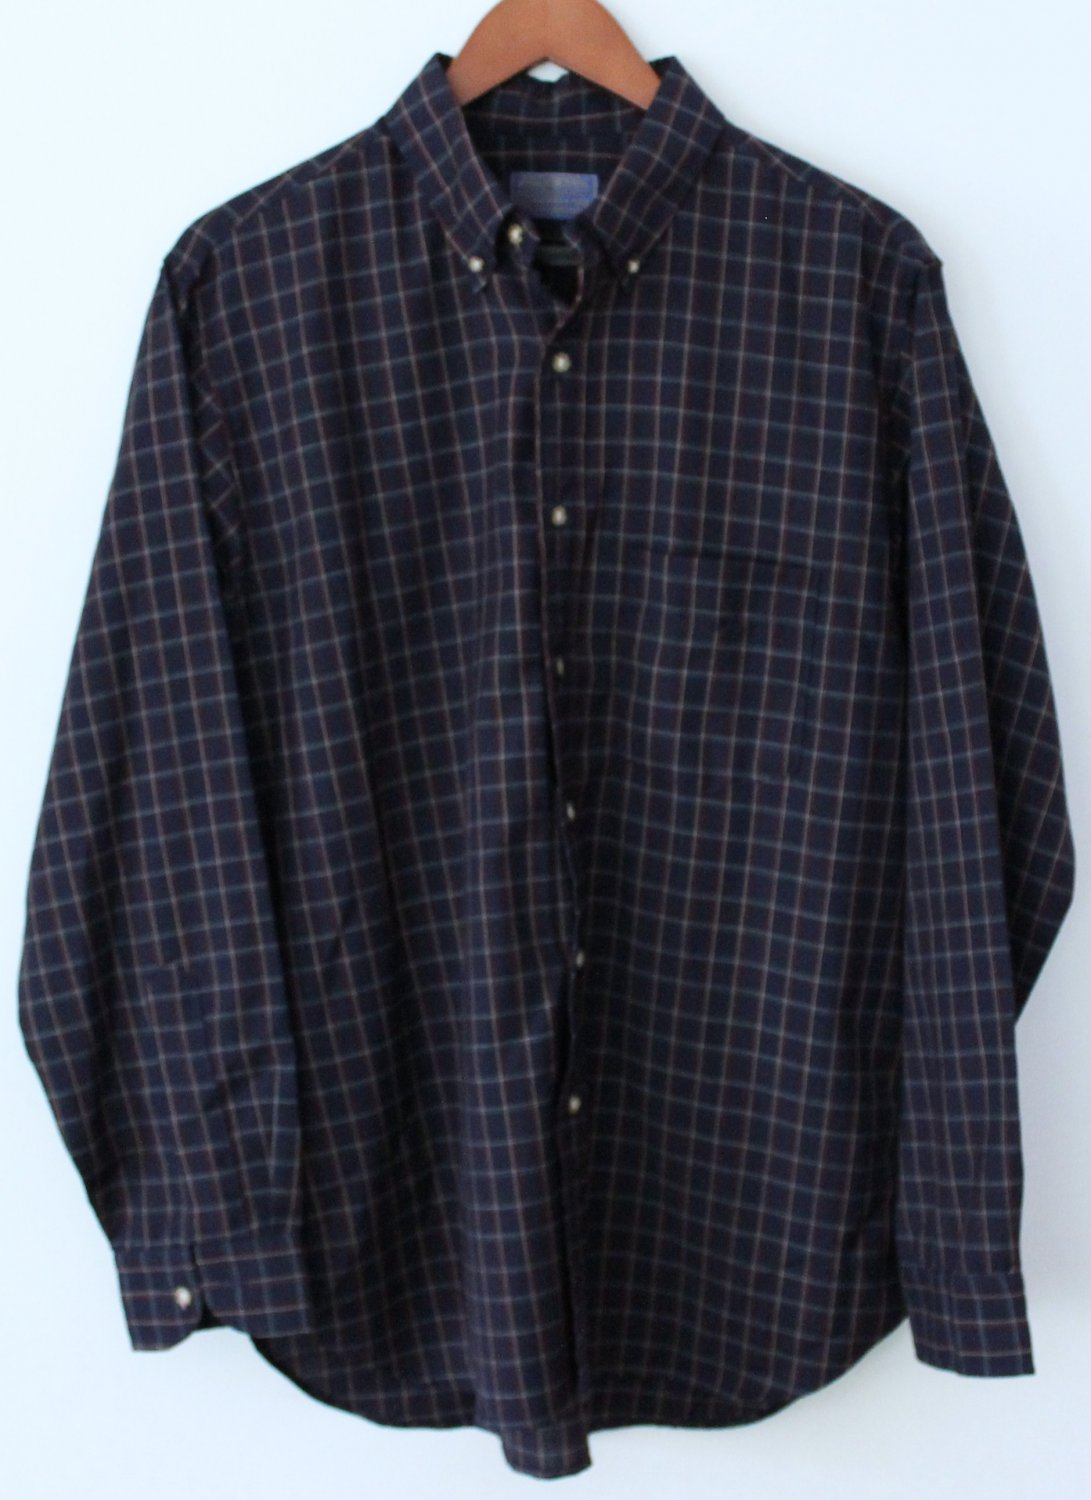 Vintage PENDLETON  Blue Plaid Wool Shirt Mens LG retro USA